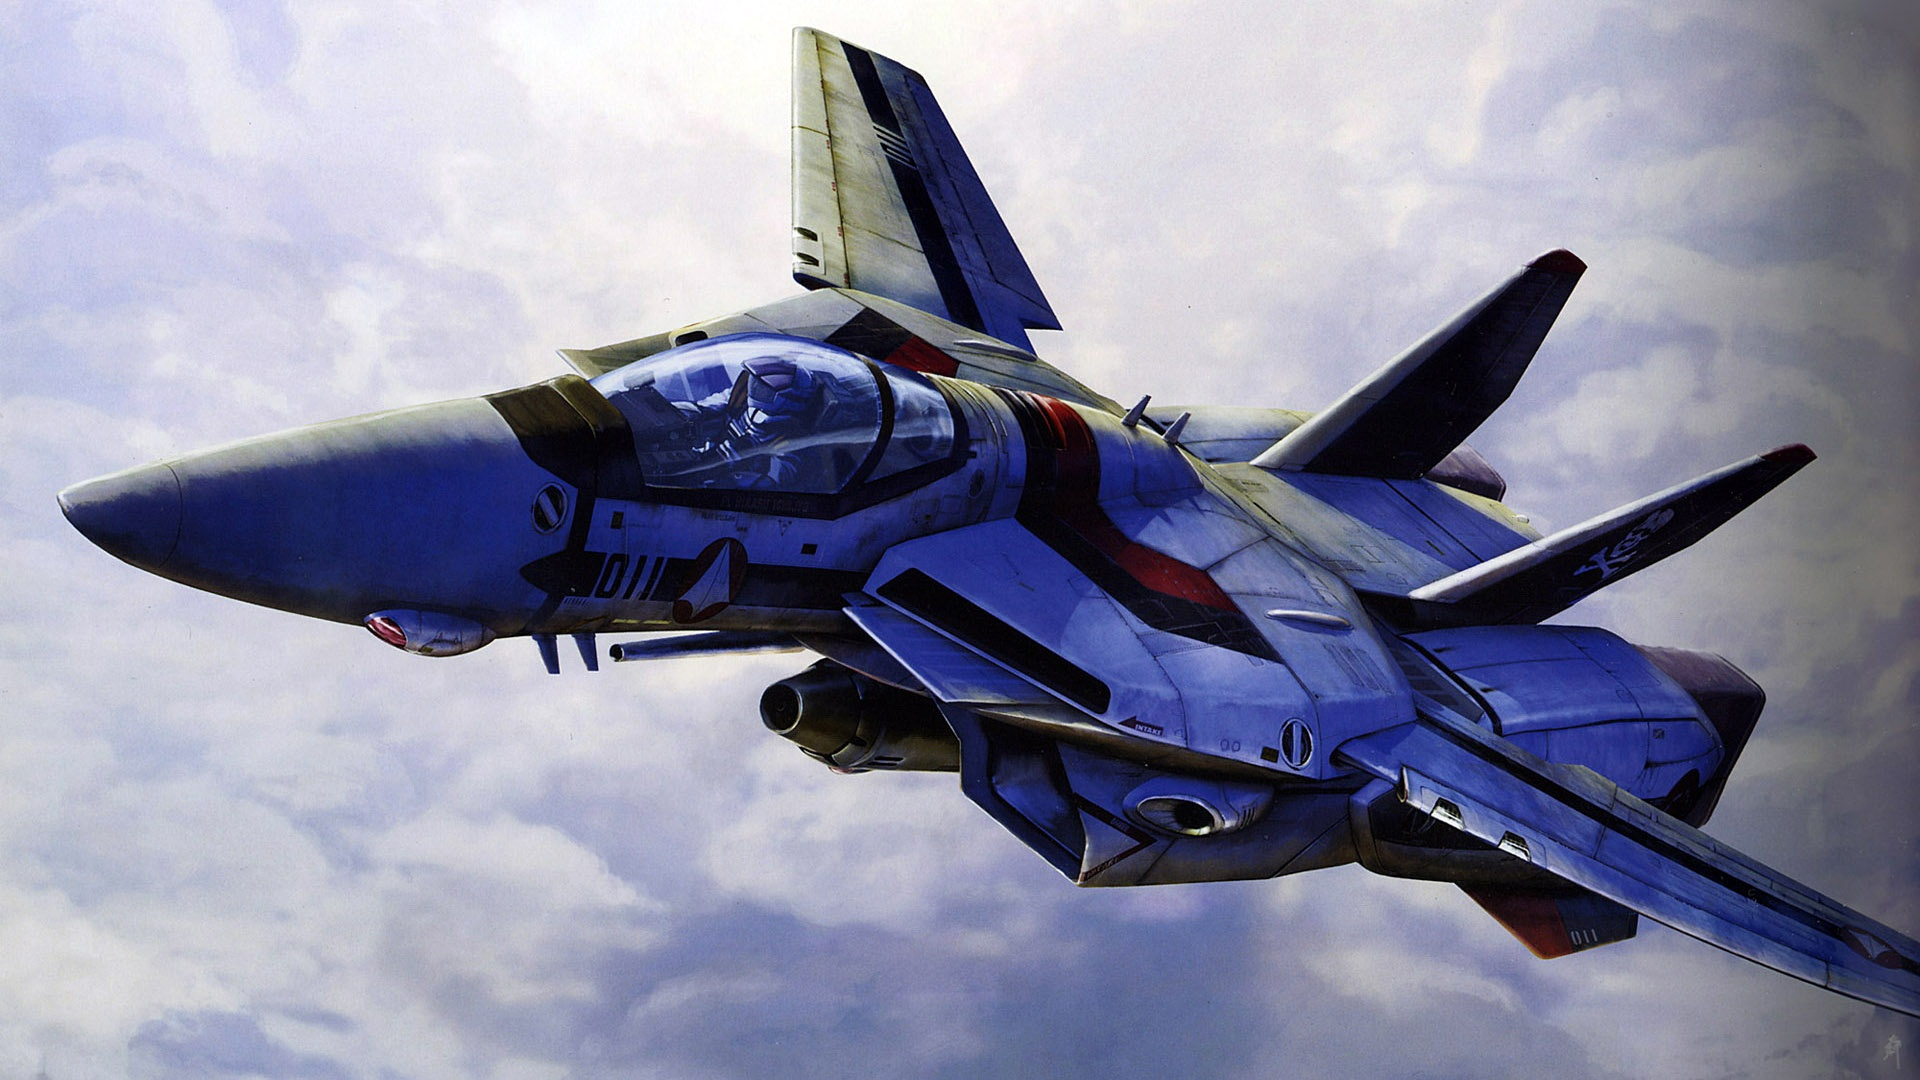 hd wallpaper fighter planes which is under the plane wallpapers 1920x1080